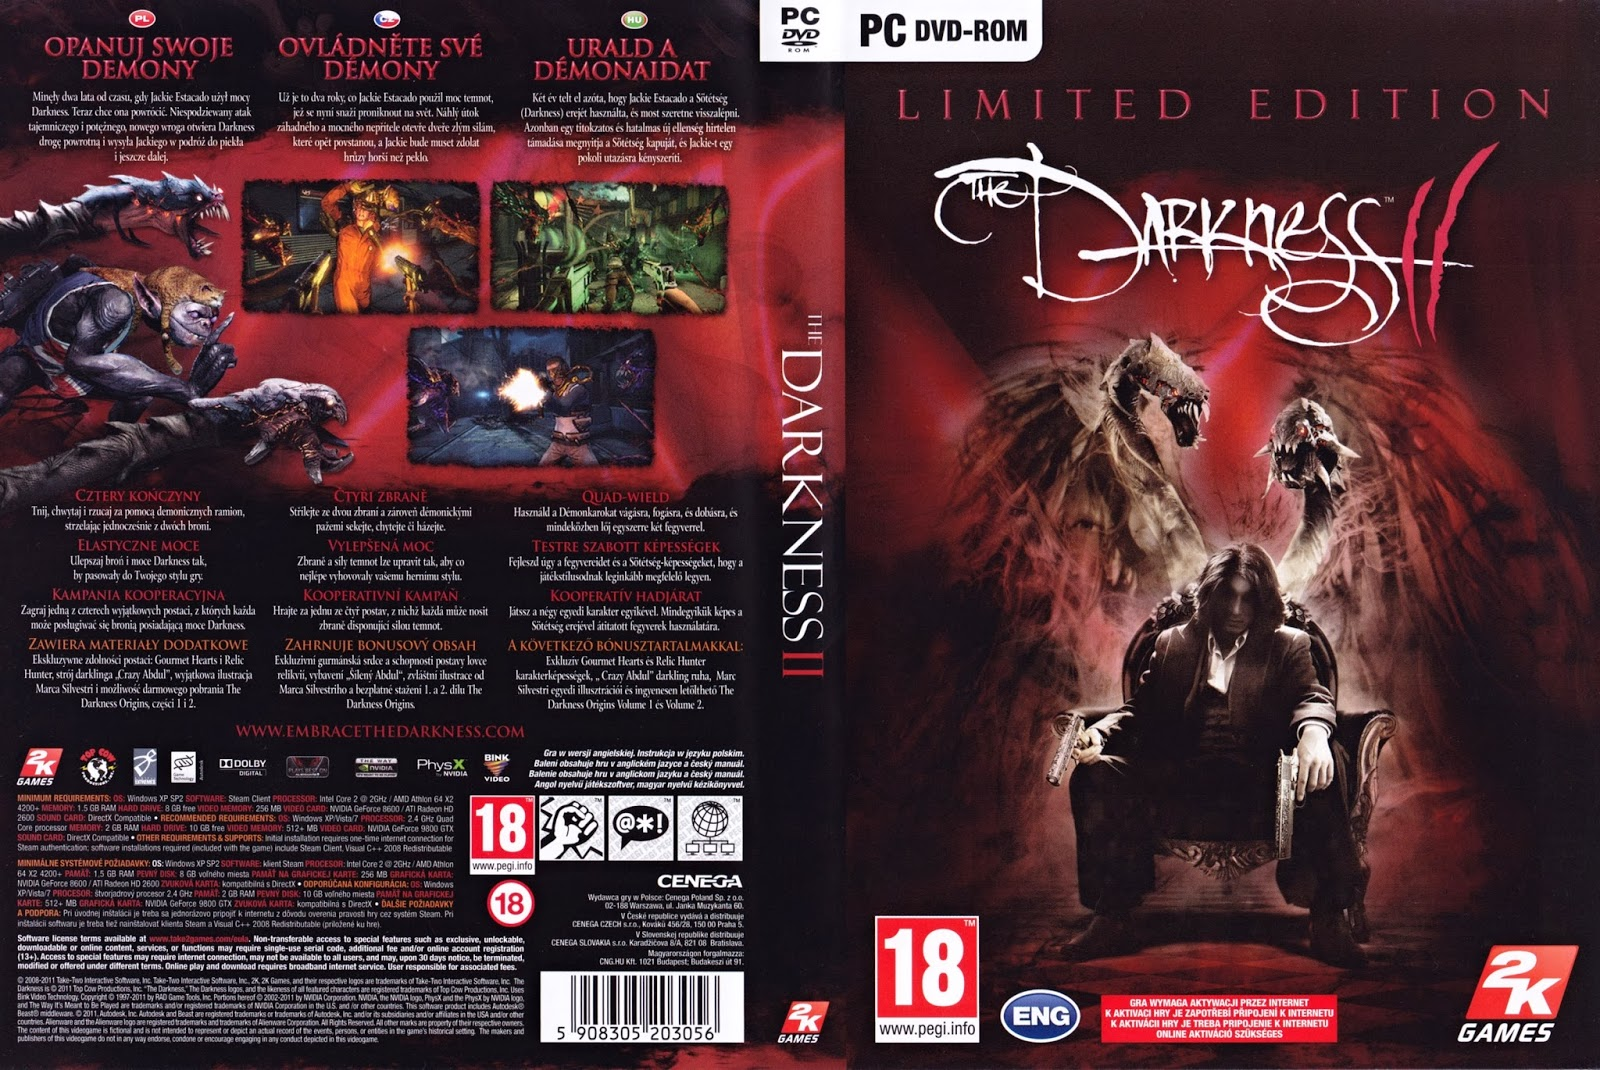 The Darkness II Limited Edition Direct Download